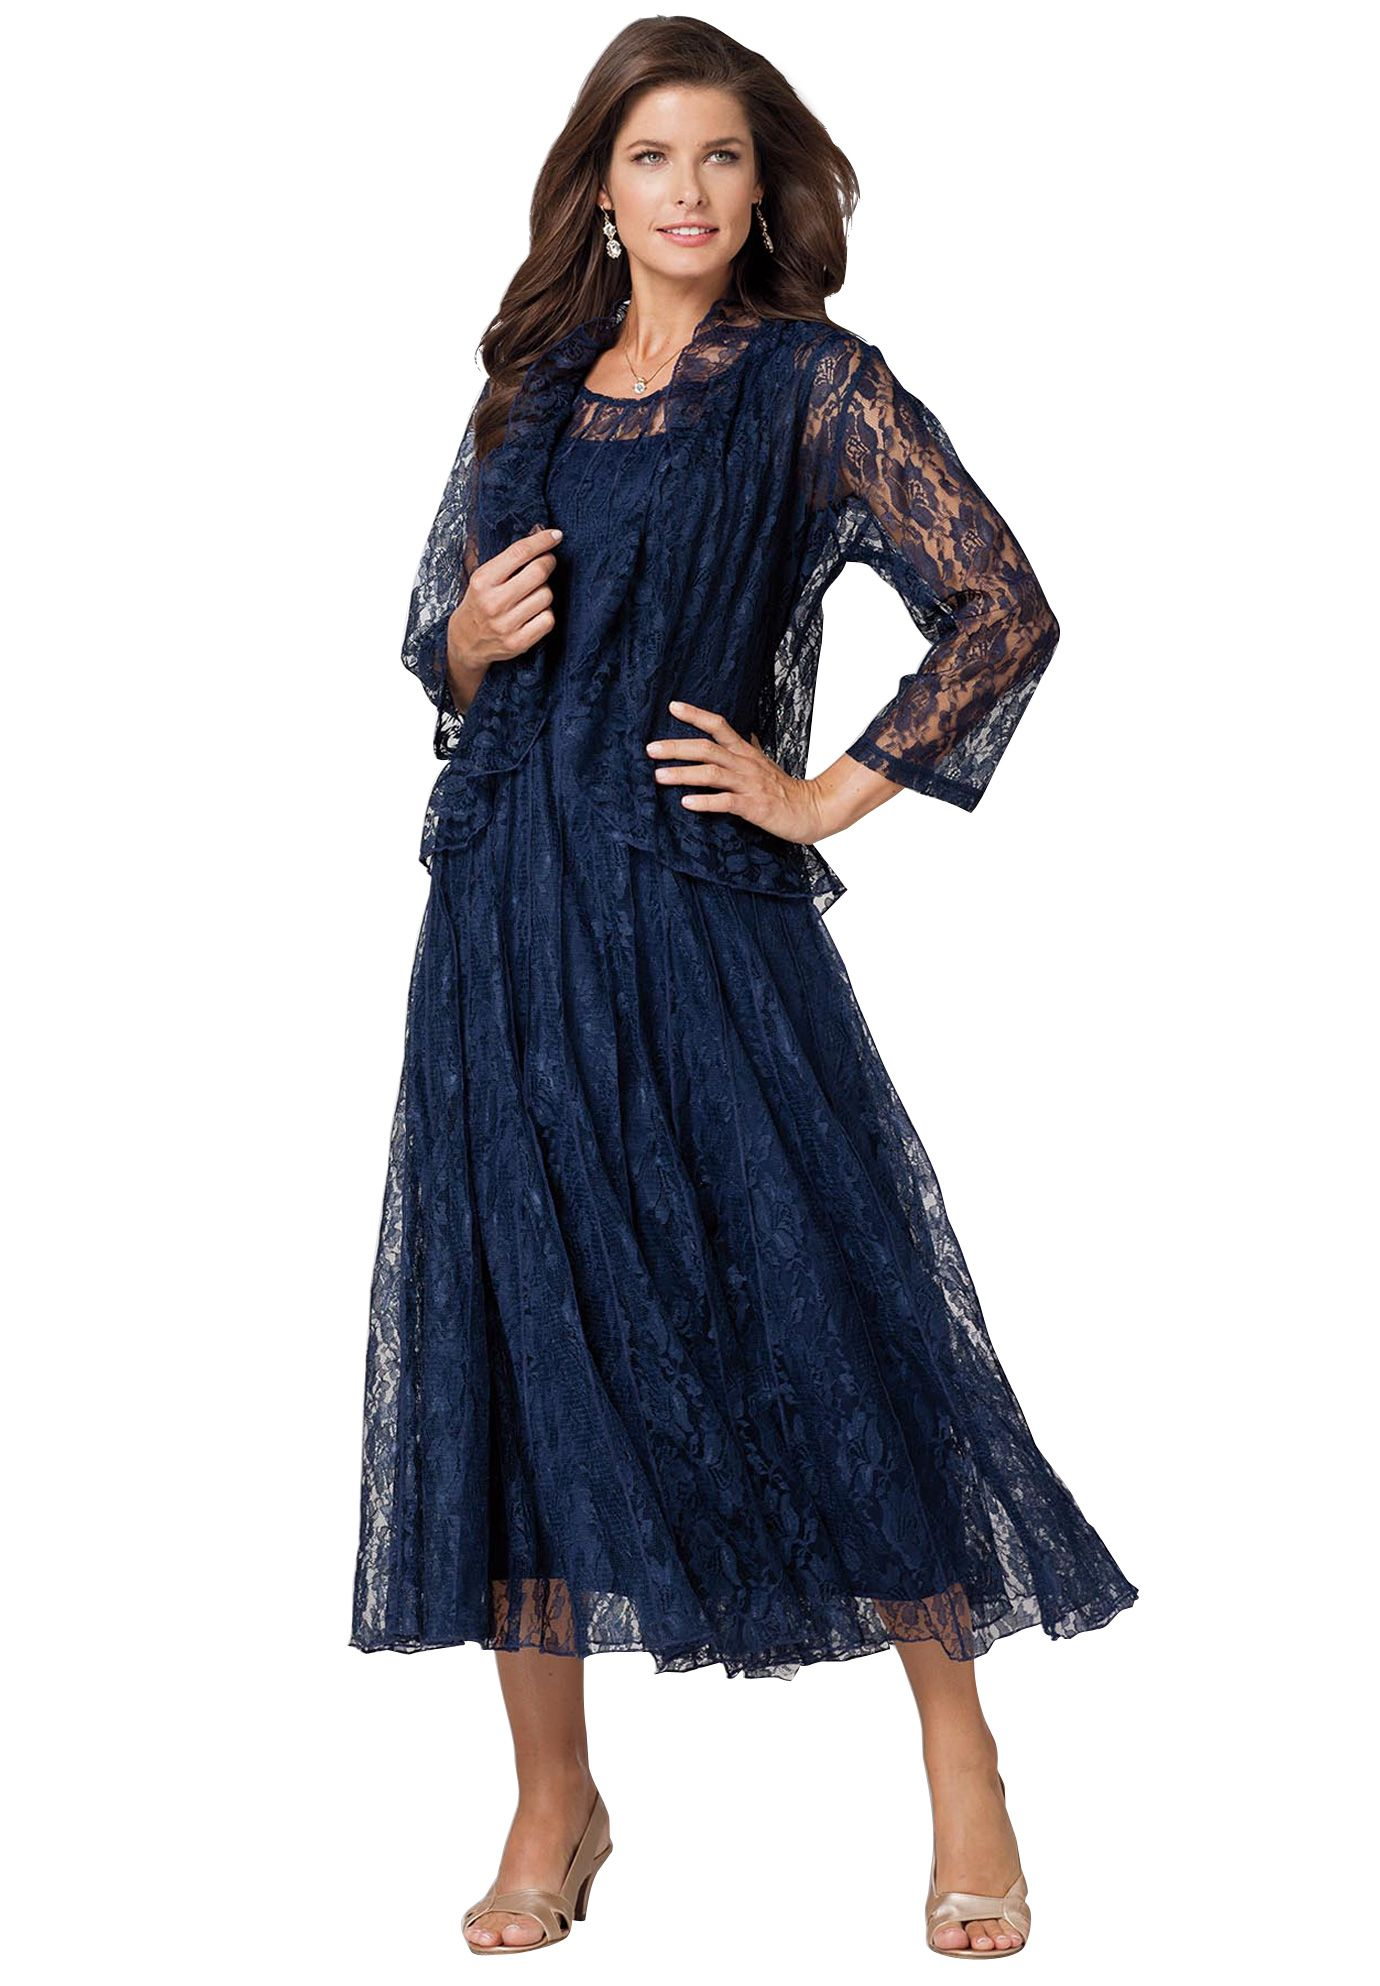 Looking for a formal plus size dress? The Fit and Flare Lace ...